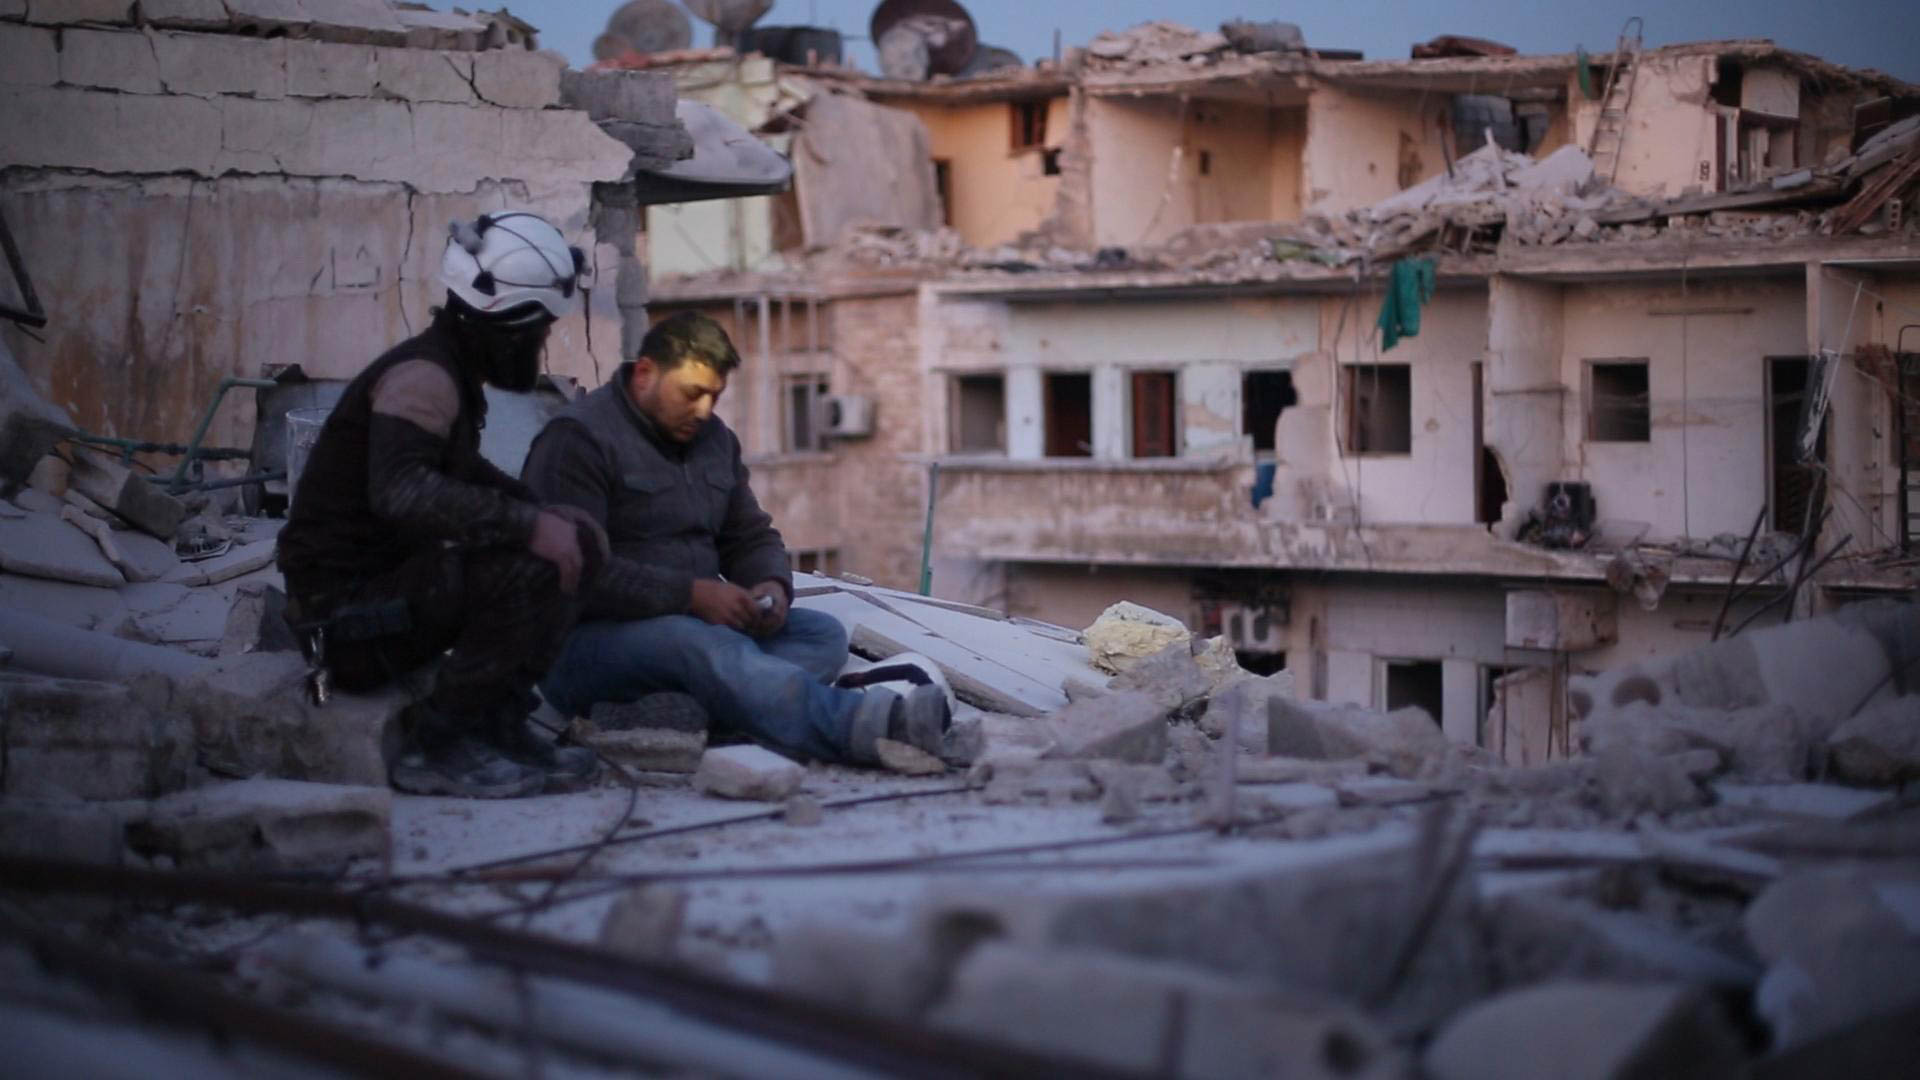 Khalid appears in Last Men in Aleppo by Feras Fayyad and Steen Johannessen, an official selection of the World Cinema Documentary Competition at the 2017 Sundance Film Festival. © 2016 Sundance Institute.